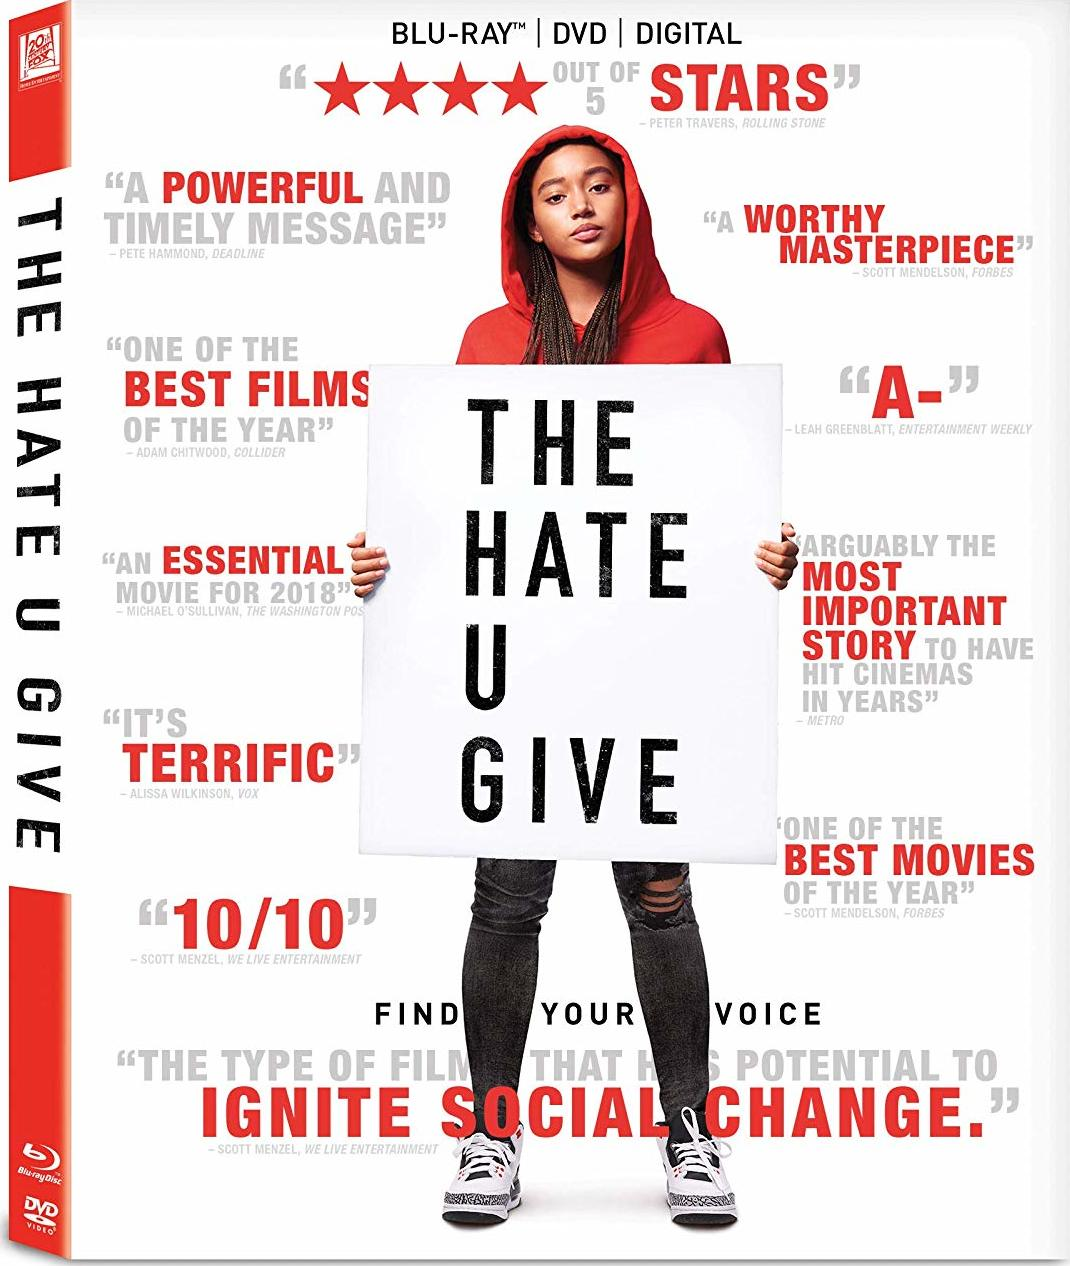 The Hate U Give (2018) poster image